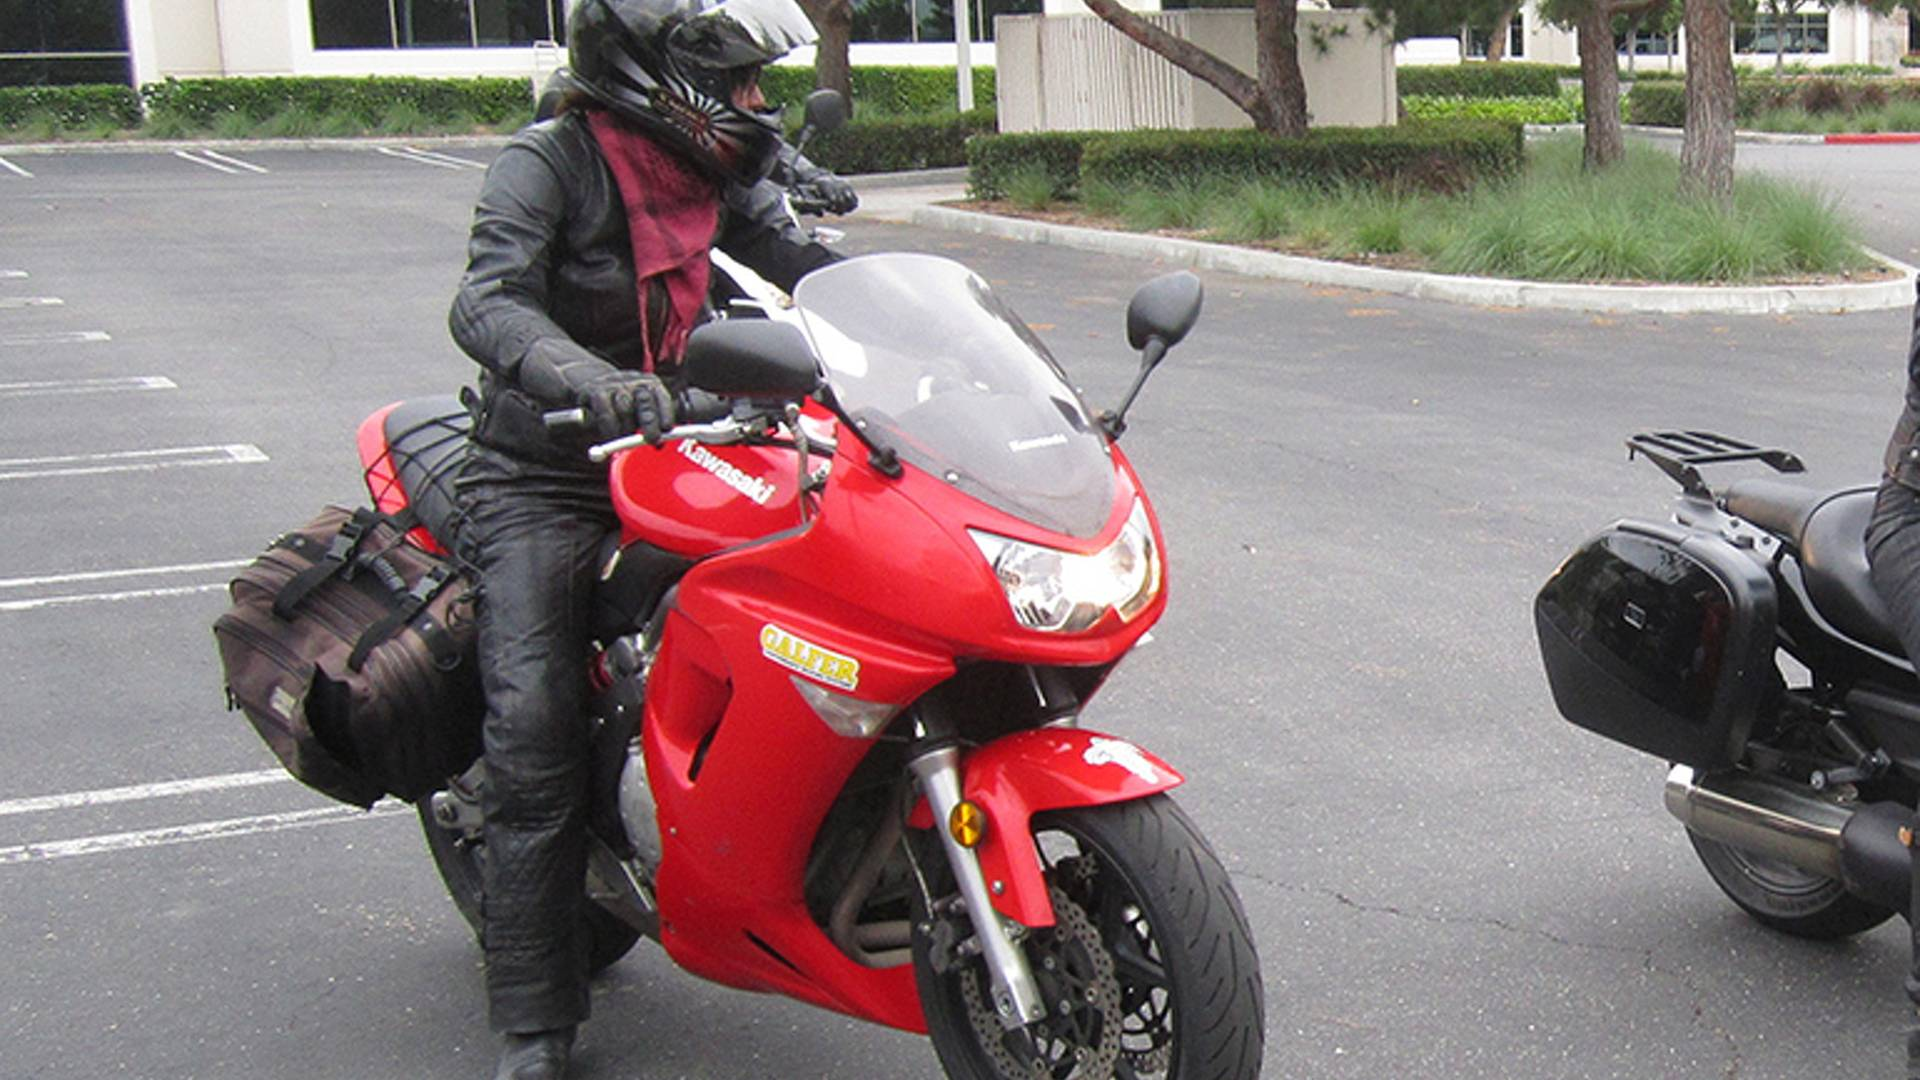 Why I Bought A Kawasaki Ninja 650 My Second Bike Rideapartcom